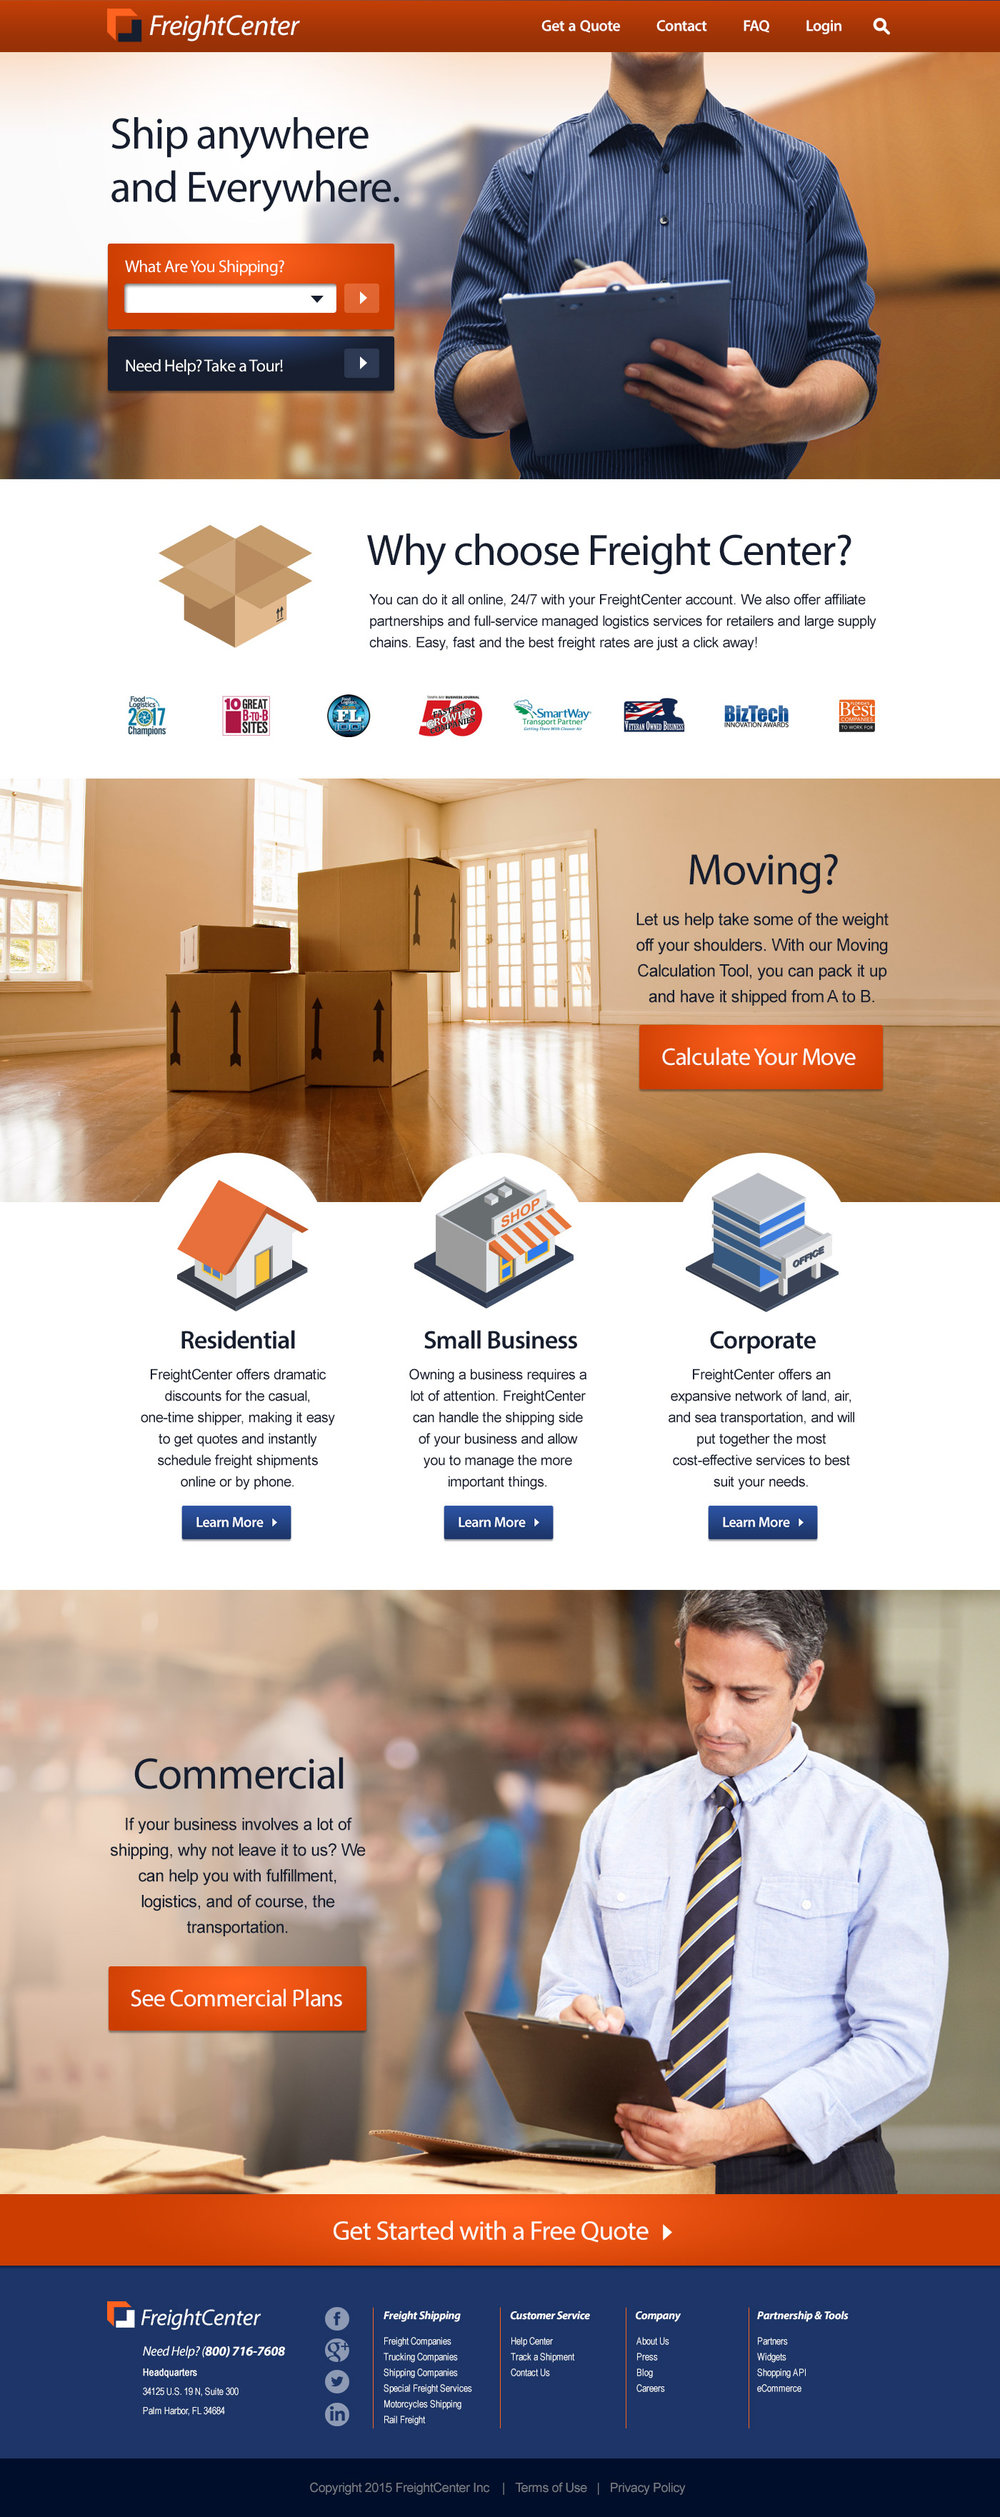 Web design - Freight Center provides comprehensive and scalable shipping solutions for residents and businesses of all sizes. The website overhaul included front and back-end redesigns, including complex user interfaces for their propriety shipping tools and calculators.